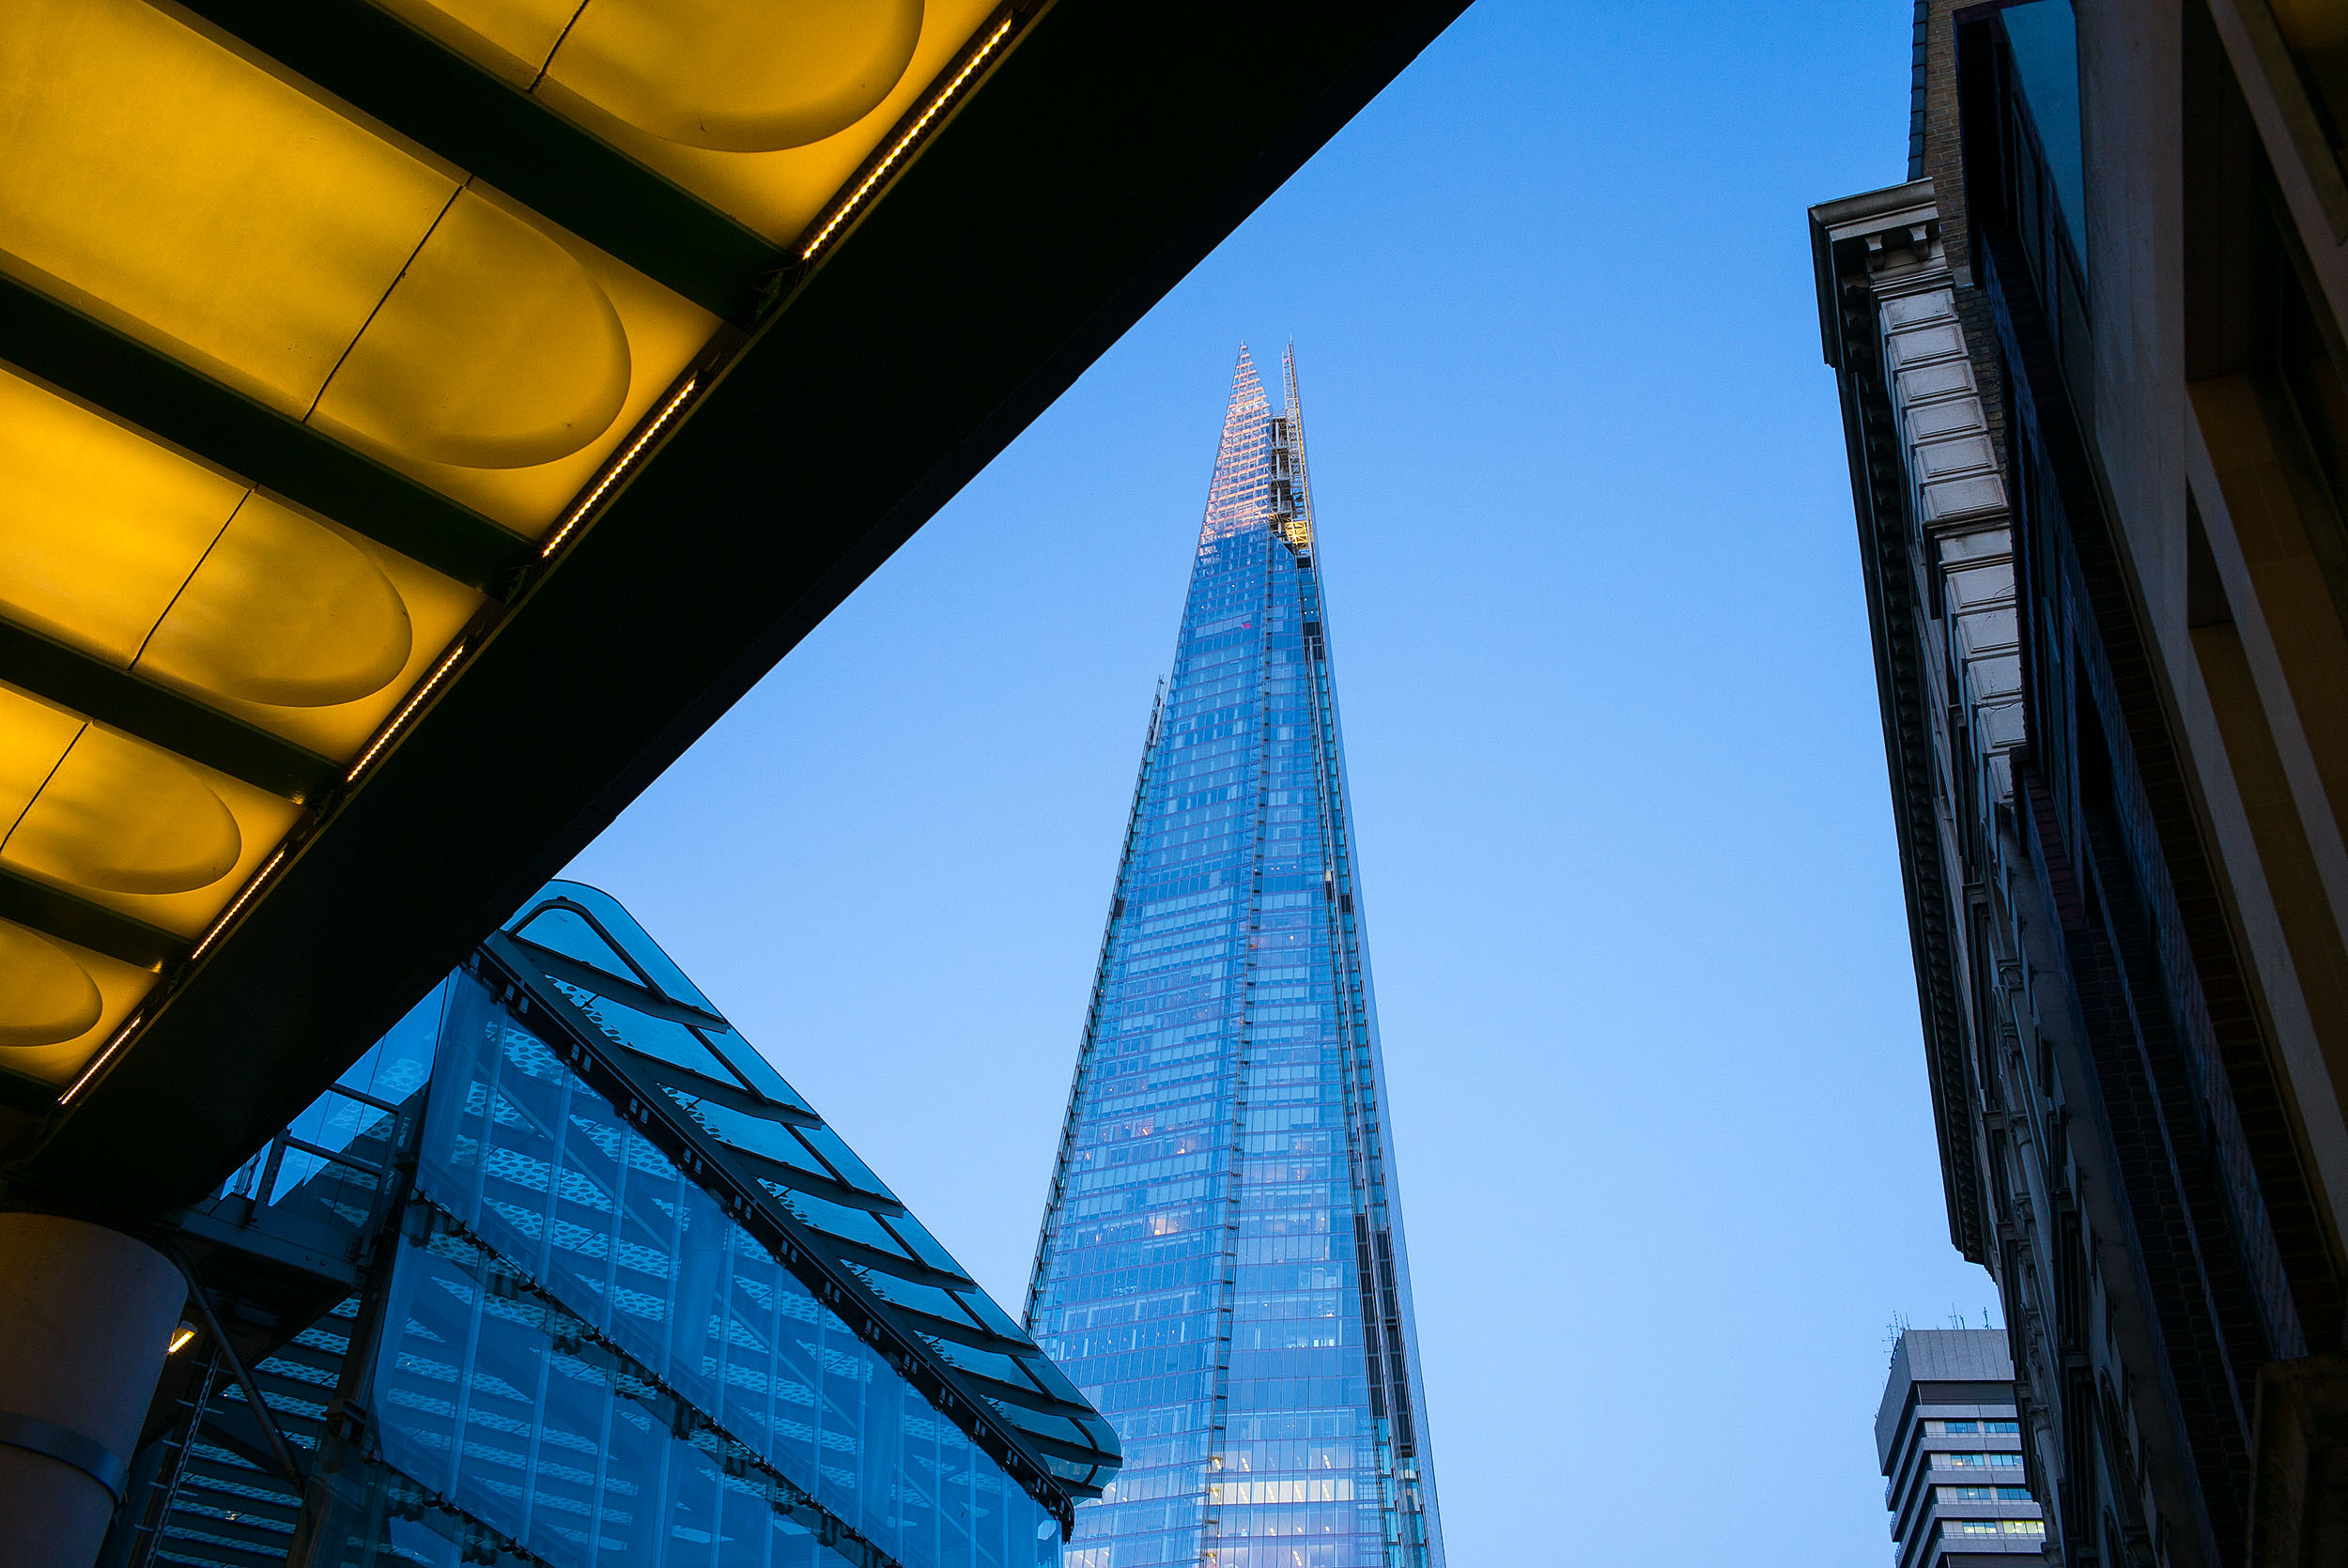 The Shard seen from Borough Market, London